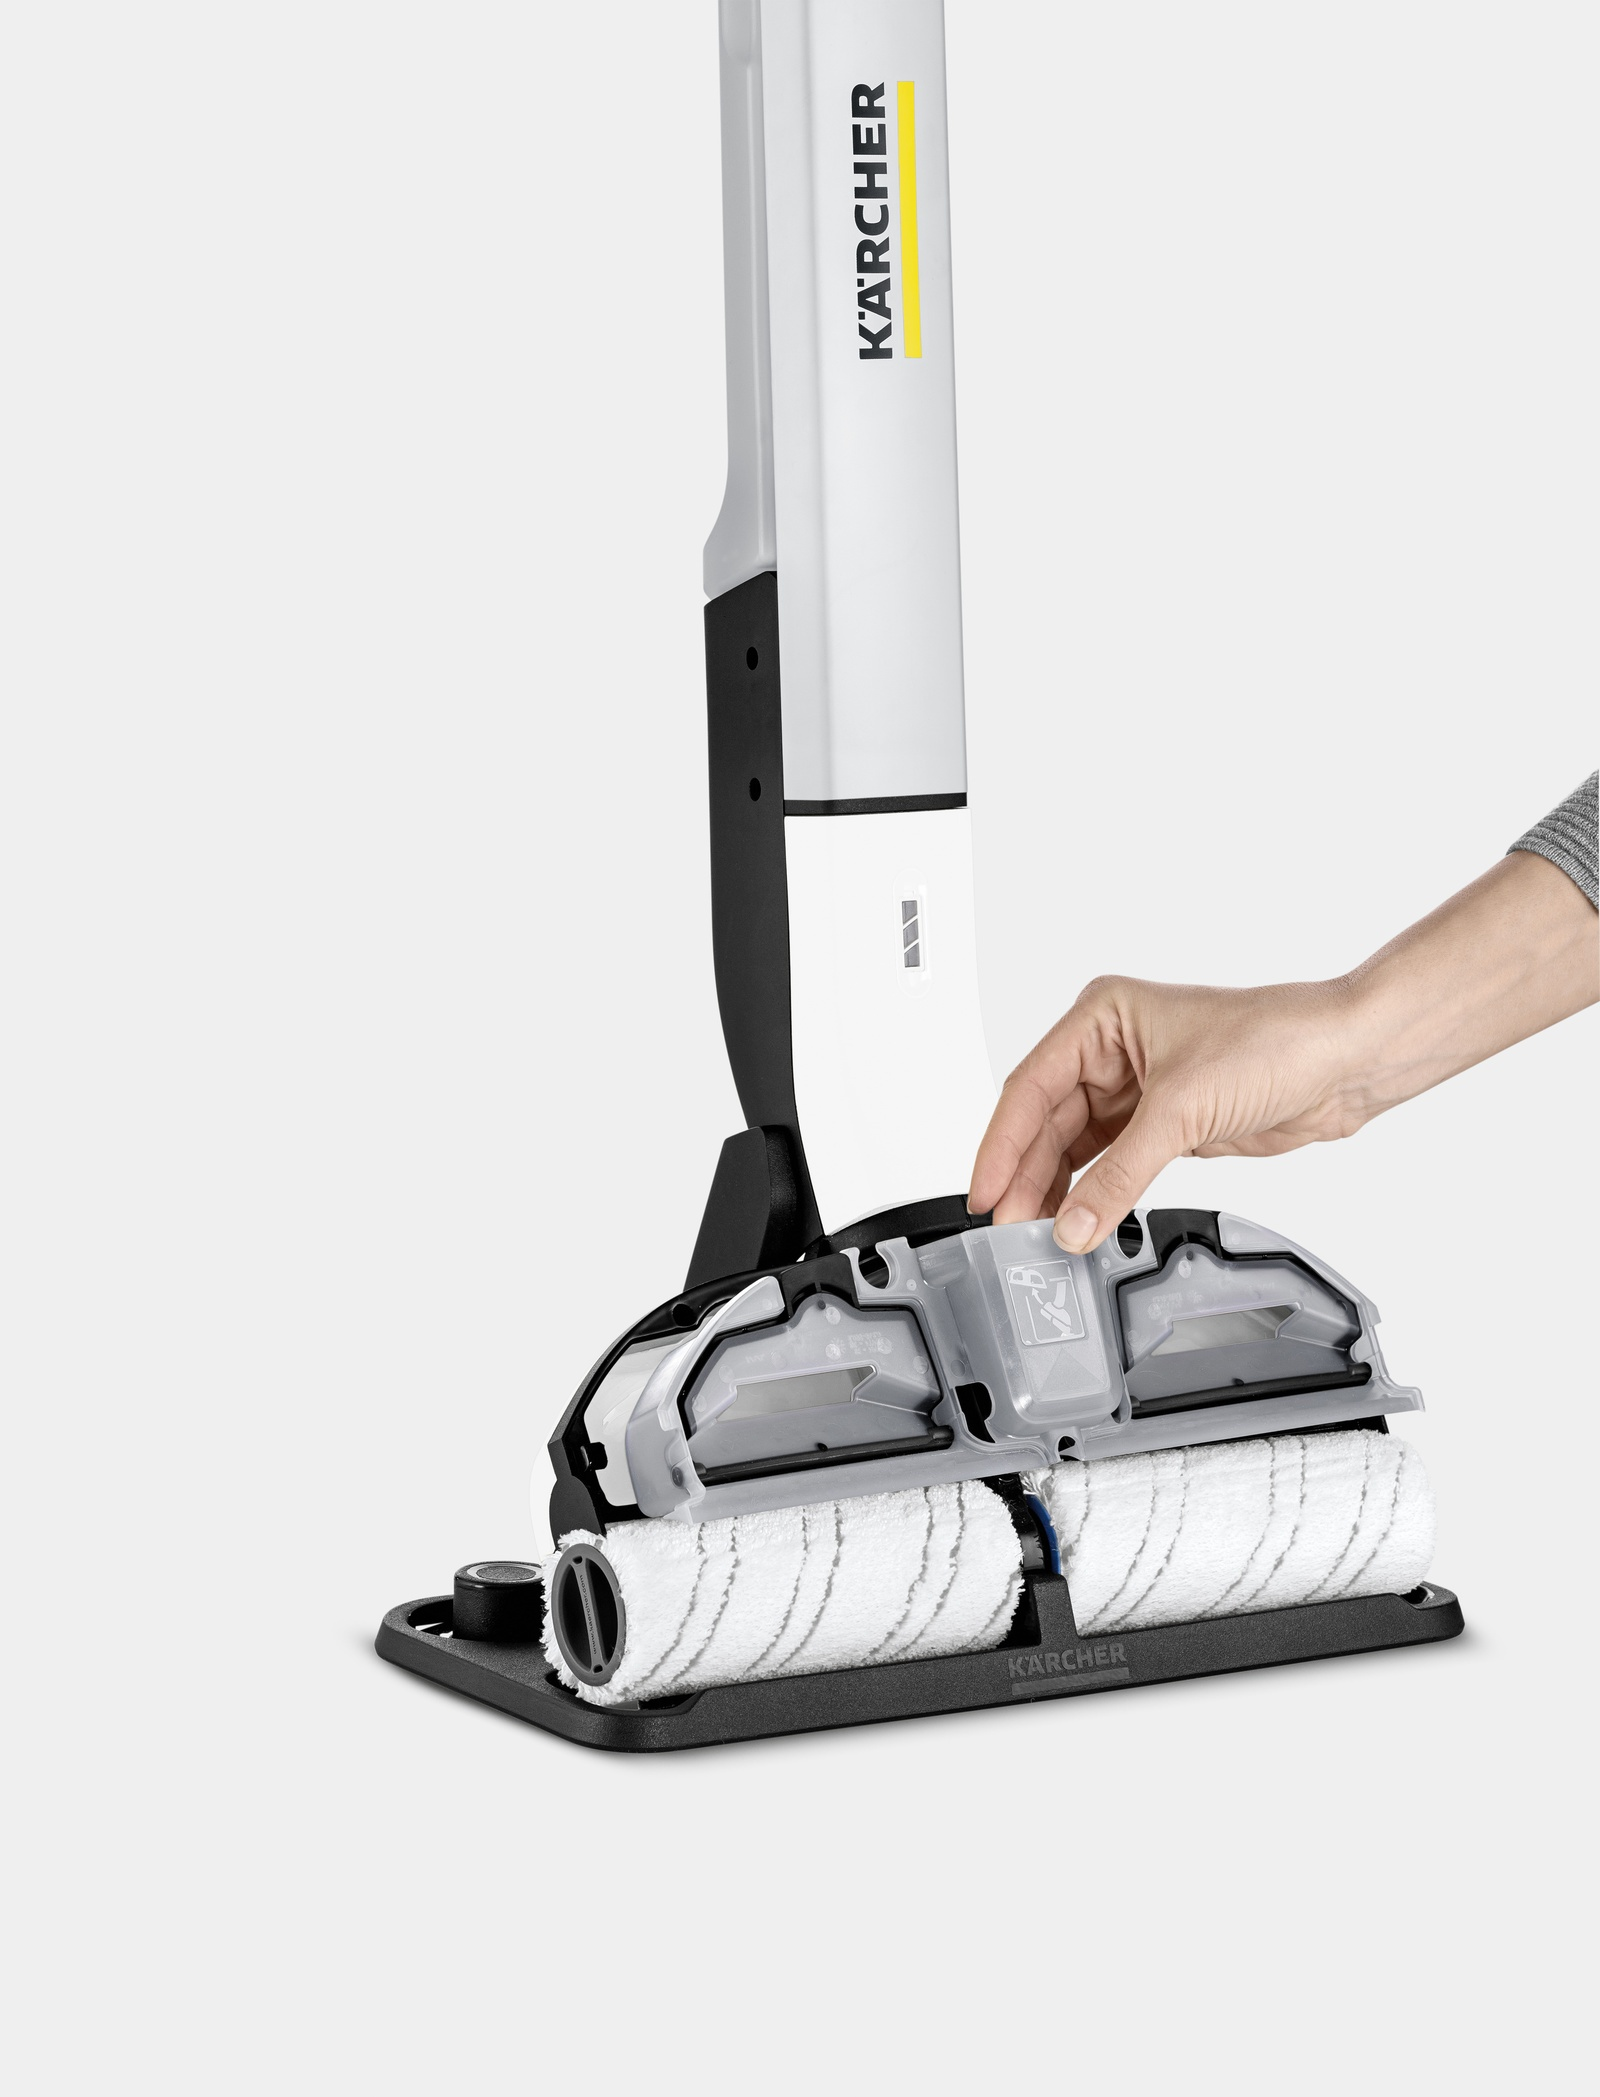 This is how freshly-mopped works | Kärcher International